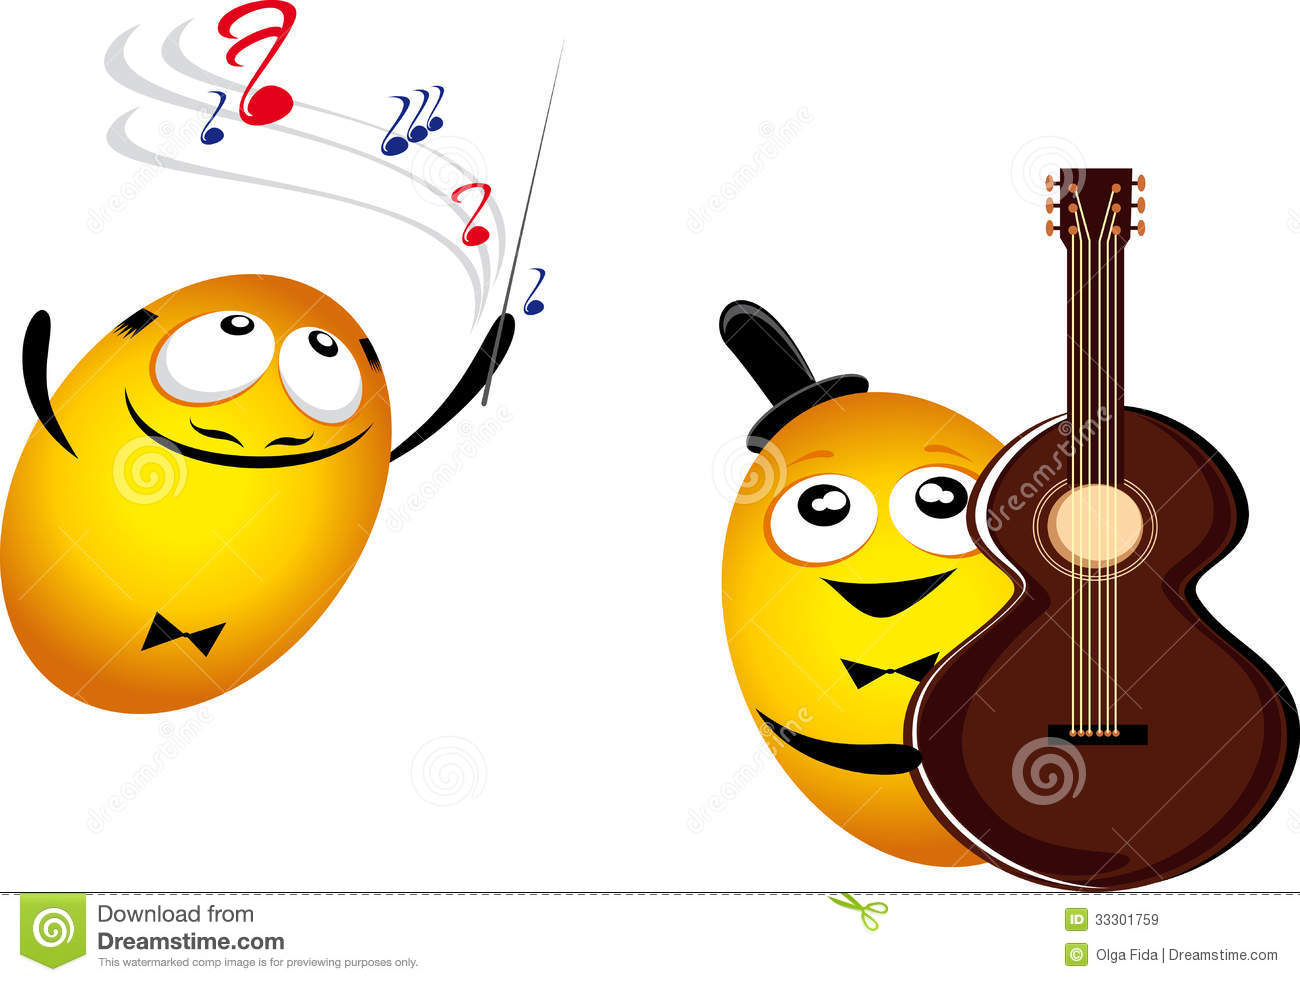 Music Emoticons Royalty Free Stock Images - Image: 33301759: dreamstime.com/royalty-free-stock-images-music-emoticons-two...